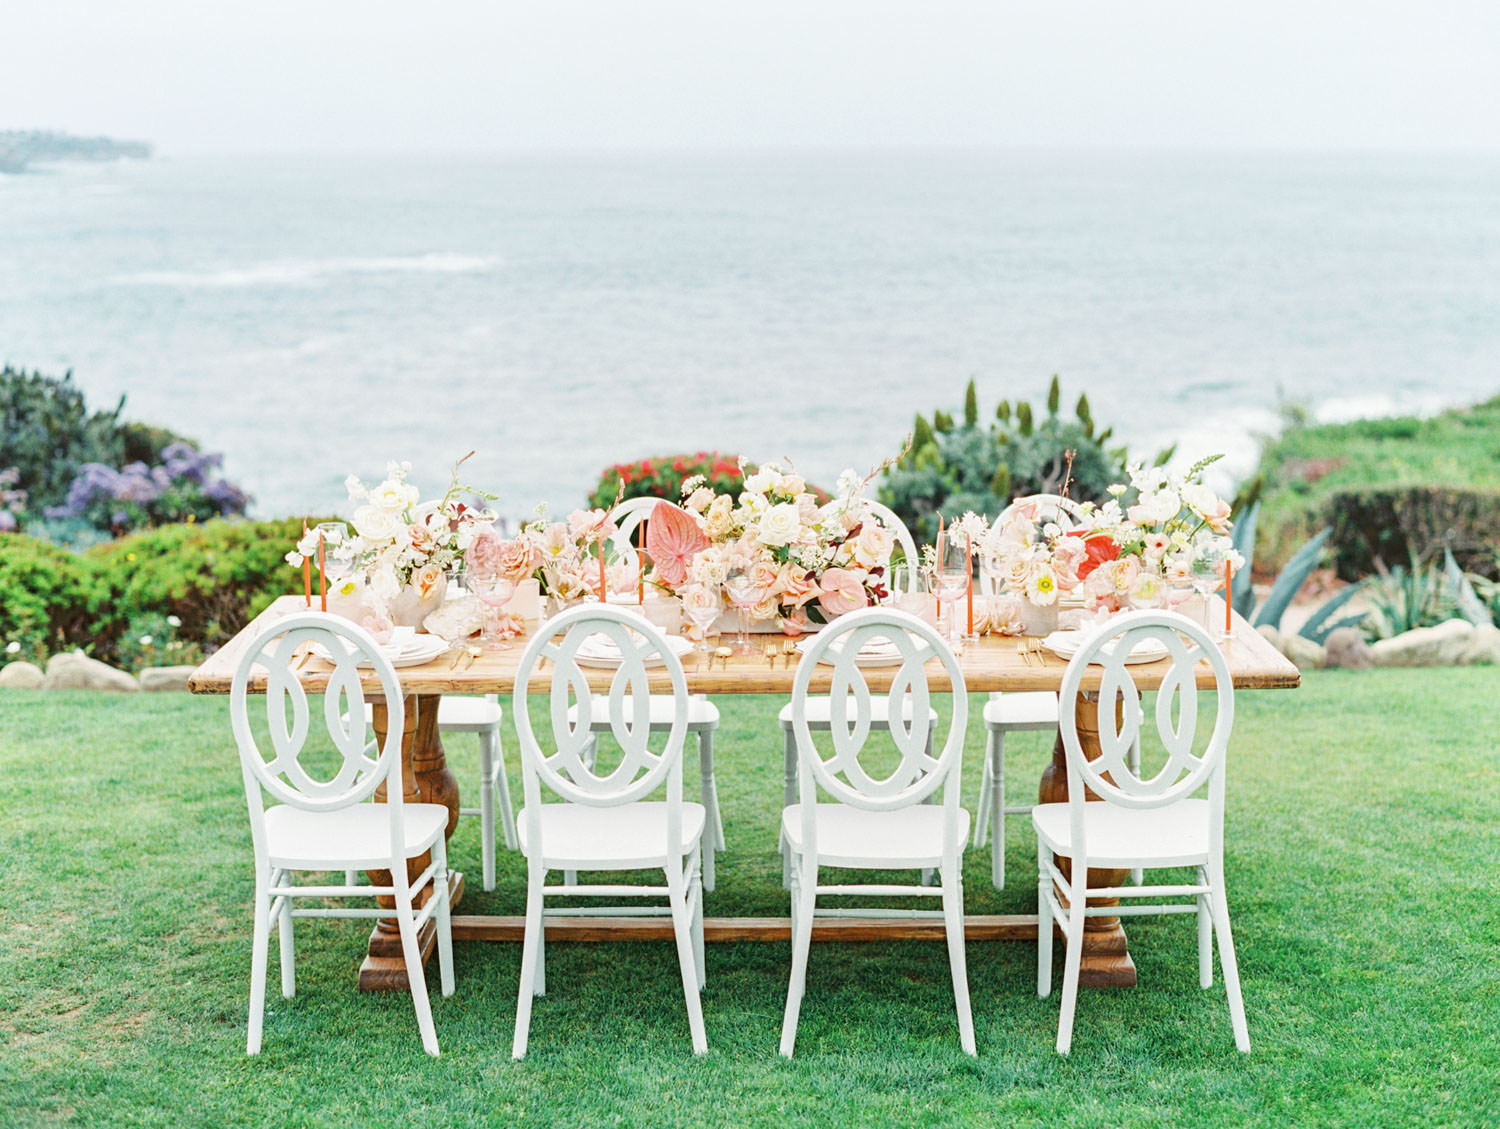 Reception table with white chairs and blend of whites, blush and mauve with neutral coastal elements like coral and sea glass and an ocean backdrop. Coastal Montage Laguna Beach Wedding Editorial by Cavin Elizabeth on film